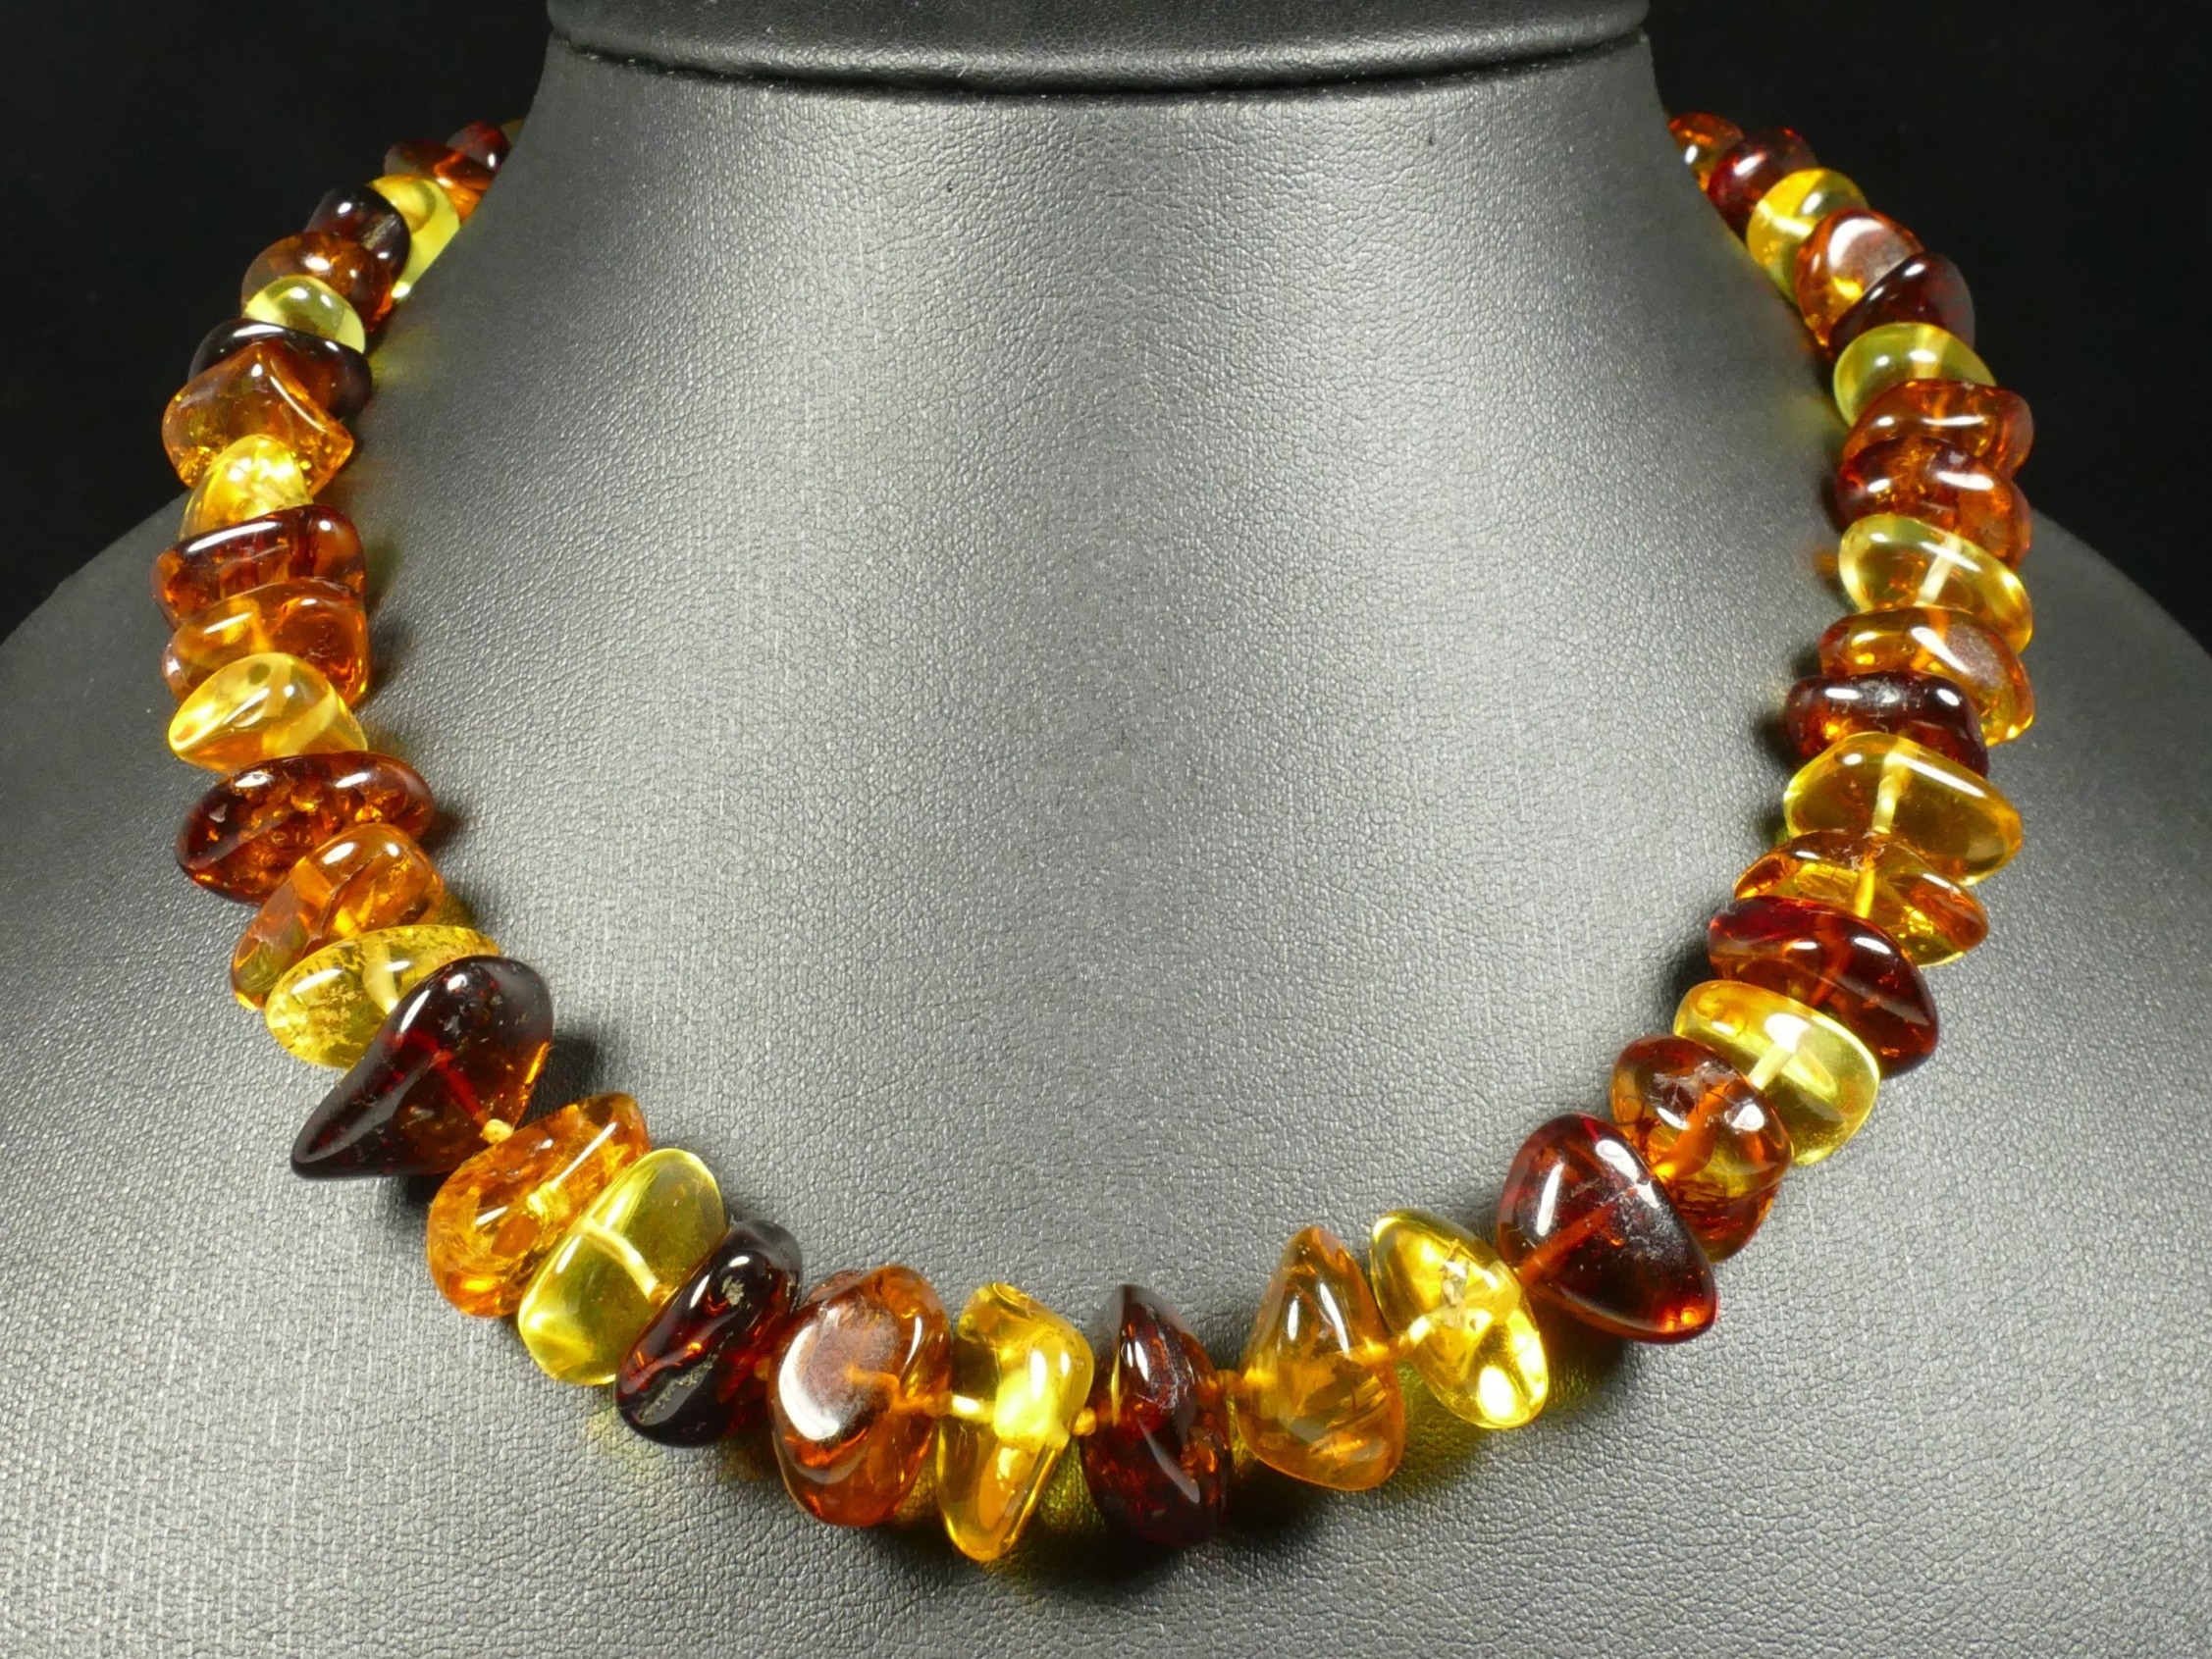 Collier d\'Ambre naturel natif en perle roulé de la Mer Baltique 44cm orange jaune rouge (#PF56)